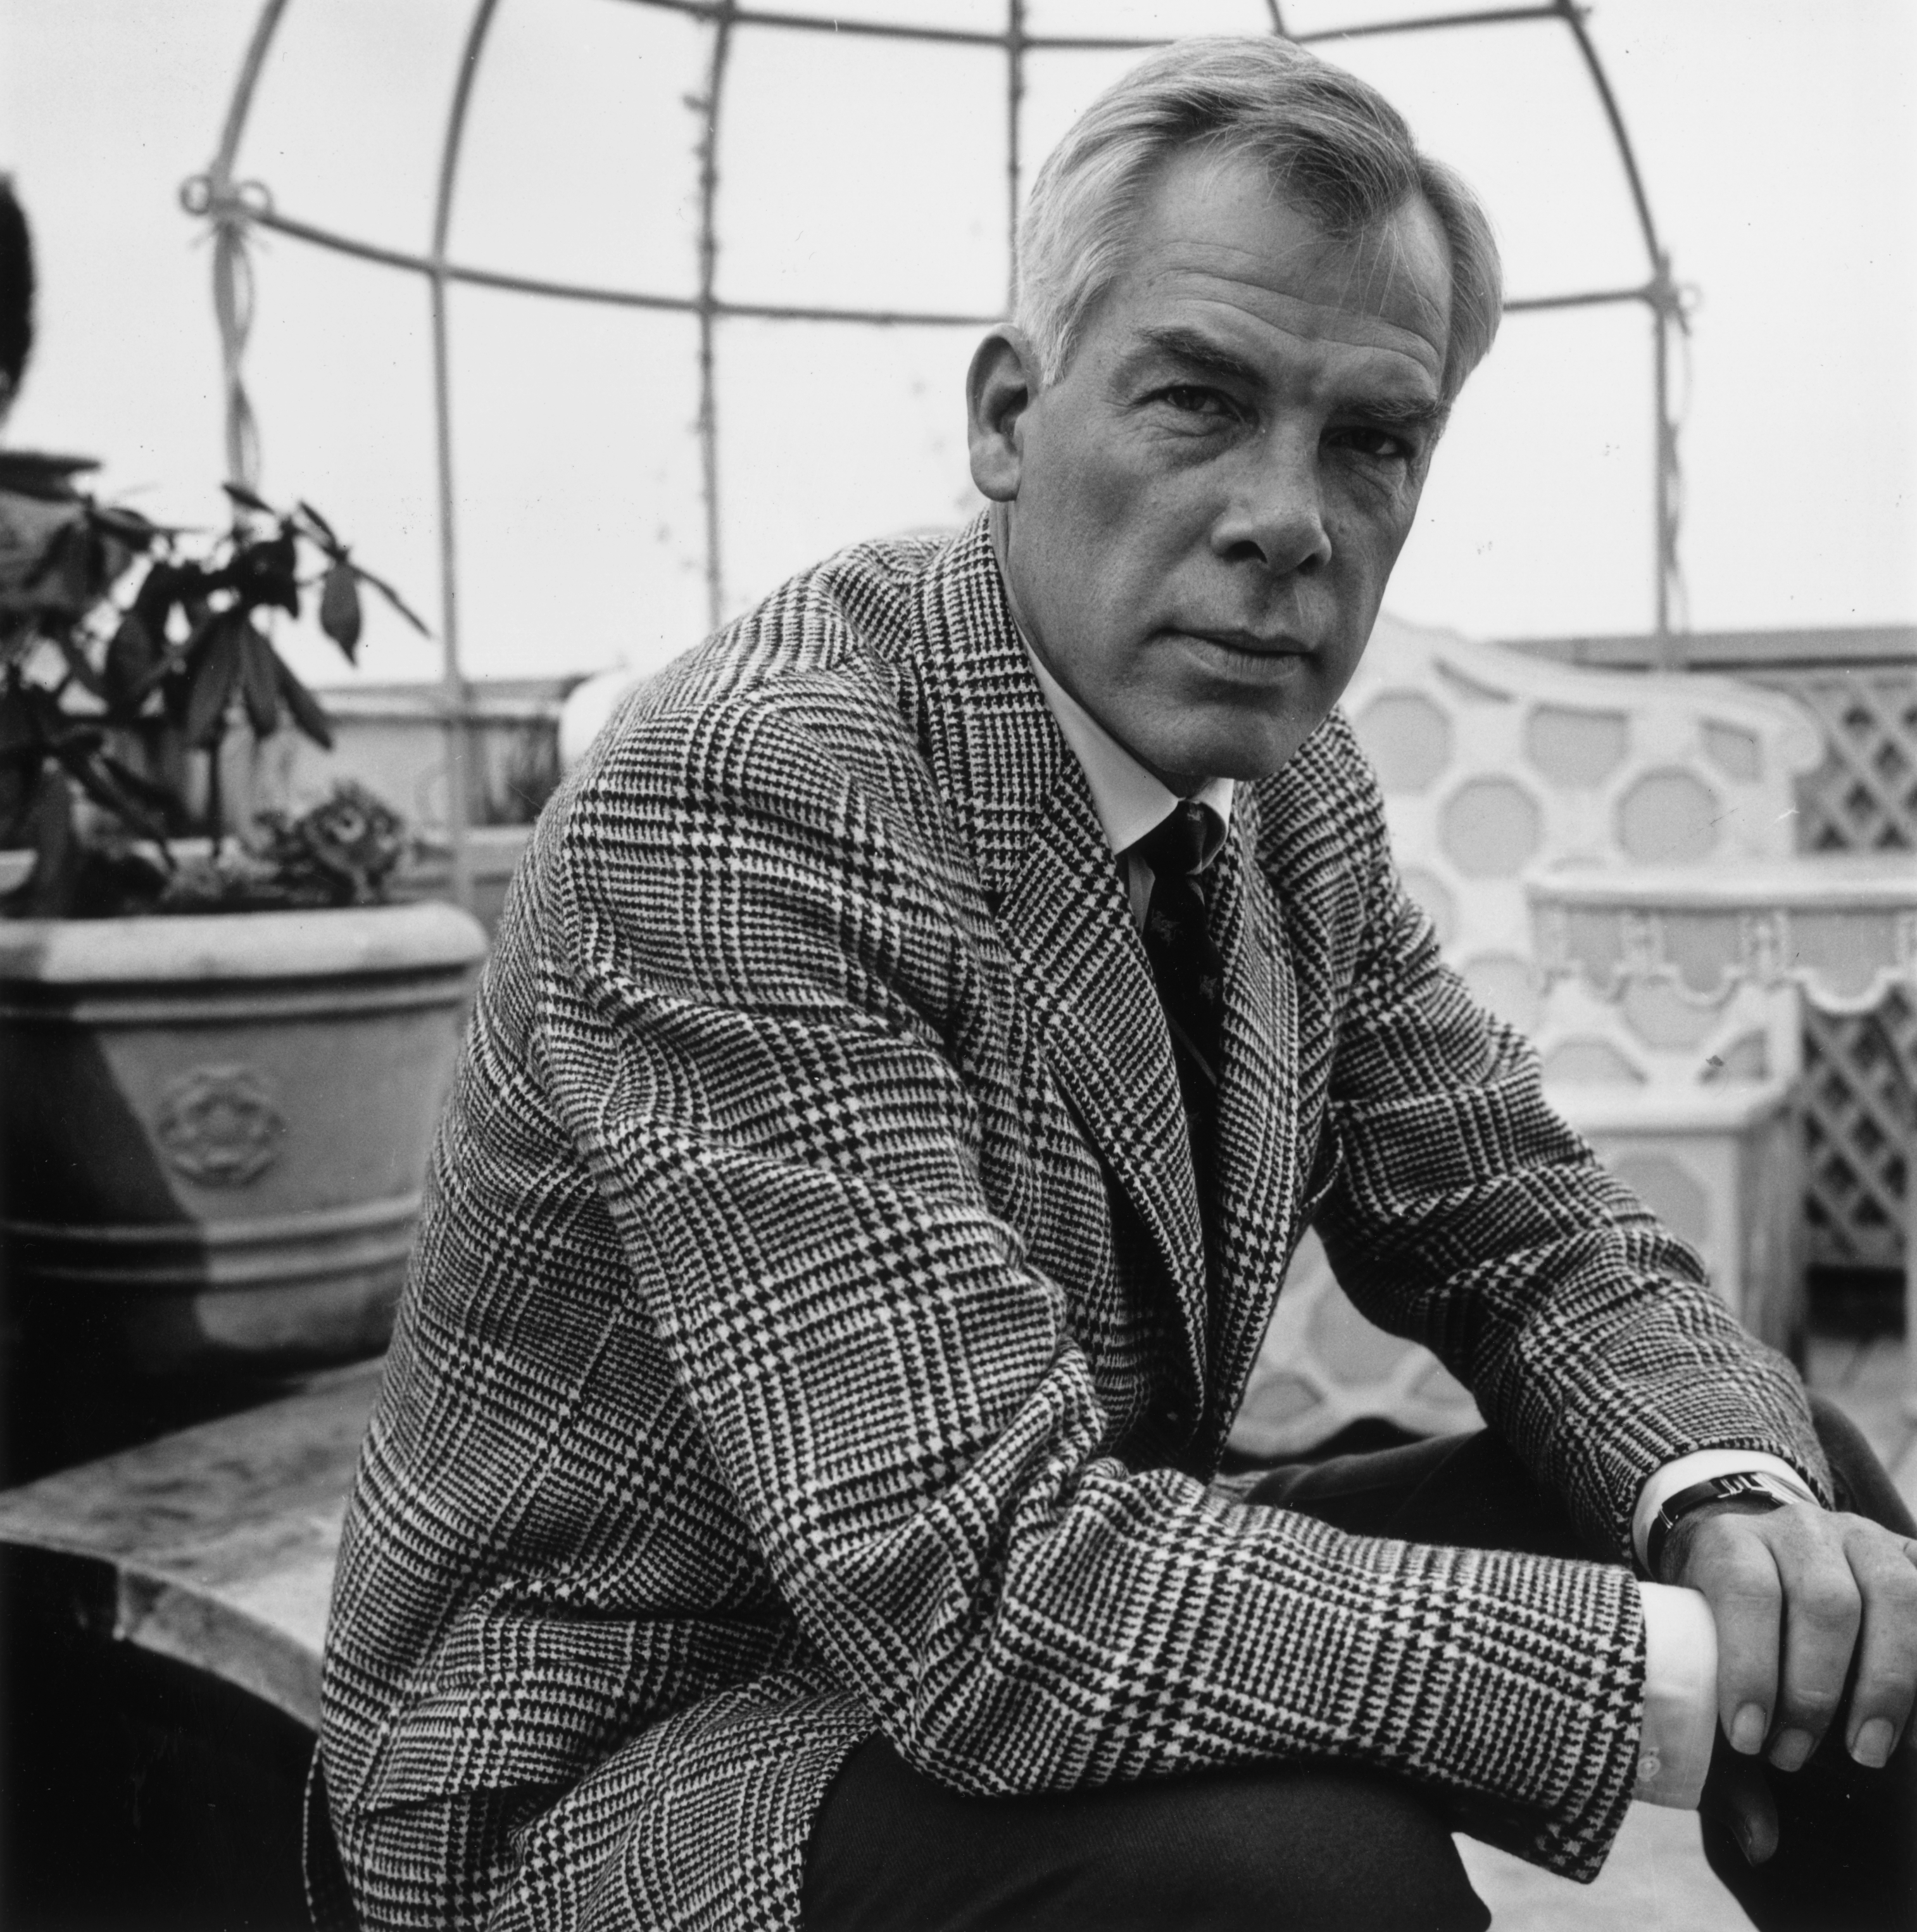 Lee Marvin I Will Be Point Blank About Liberty Valance: Lee Marvin (1924-1987)